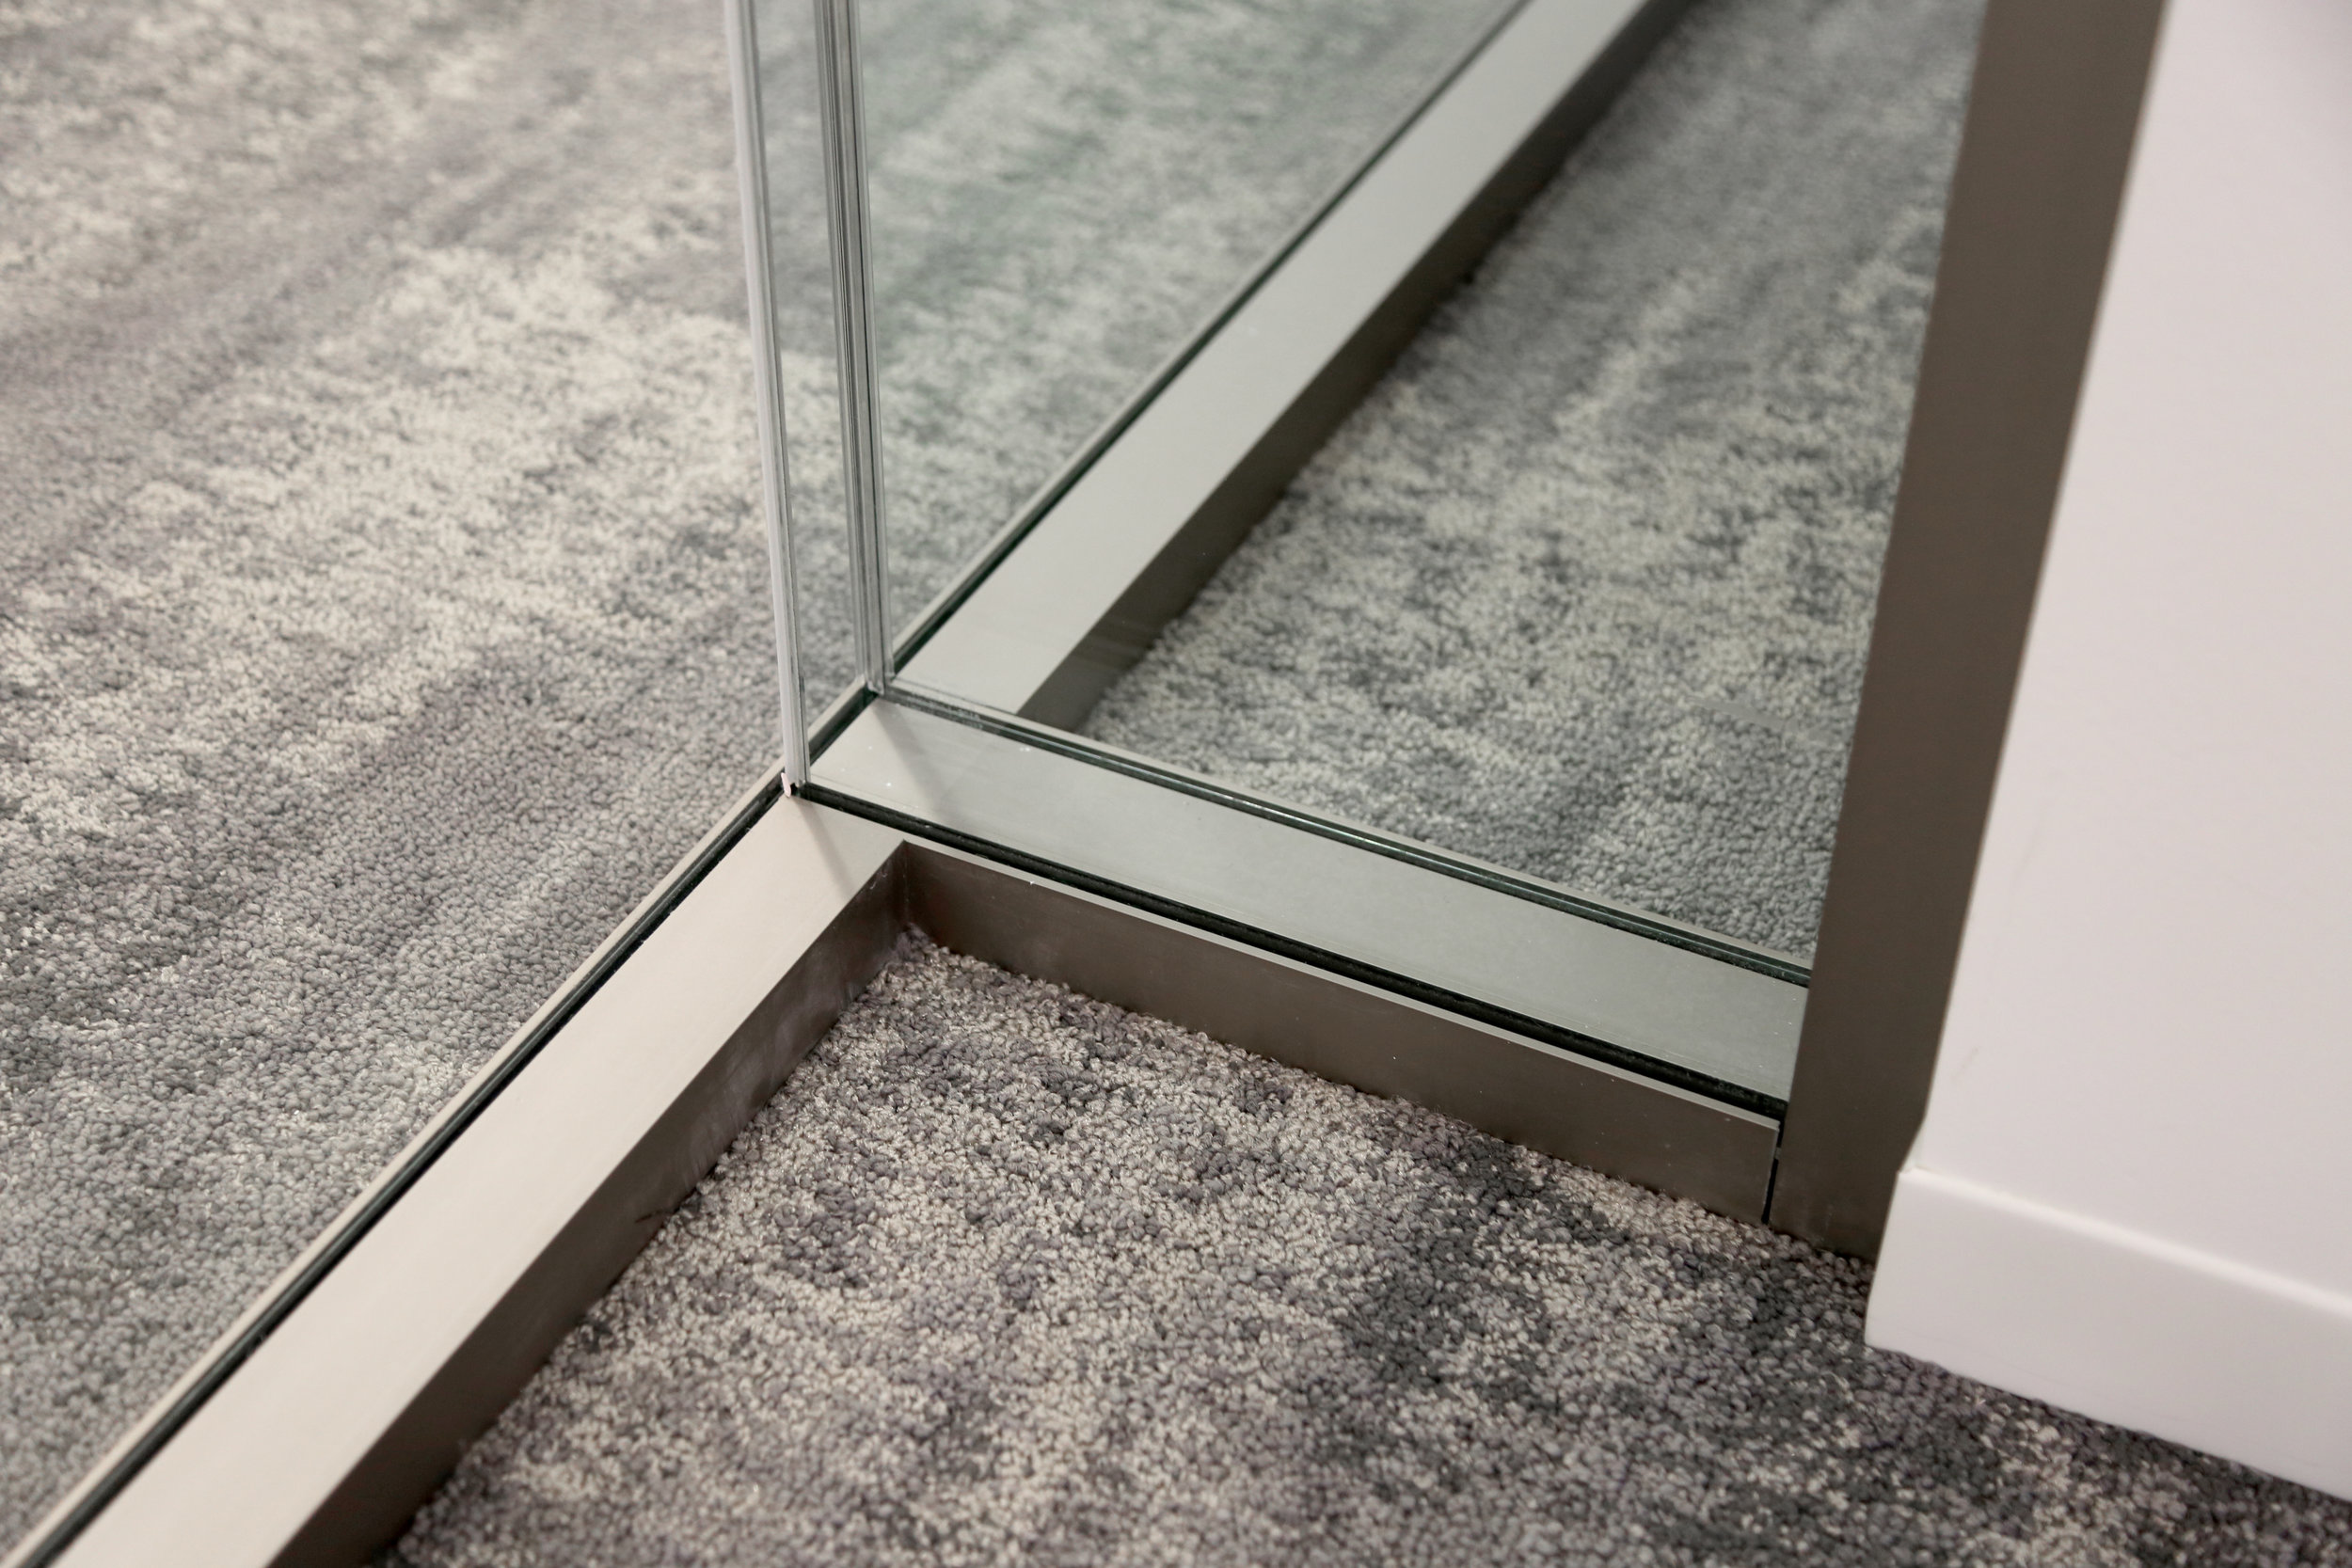 Modernus Three-Way Glass Dual-Pane - Spaceworks AI.jpg